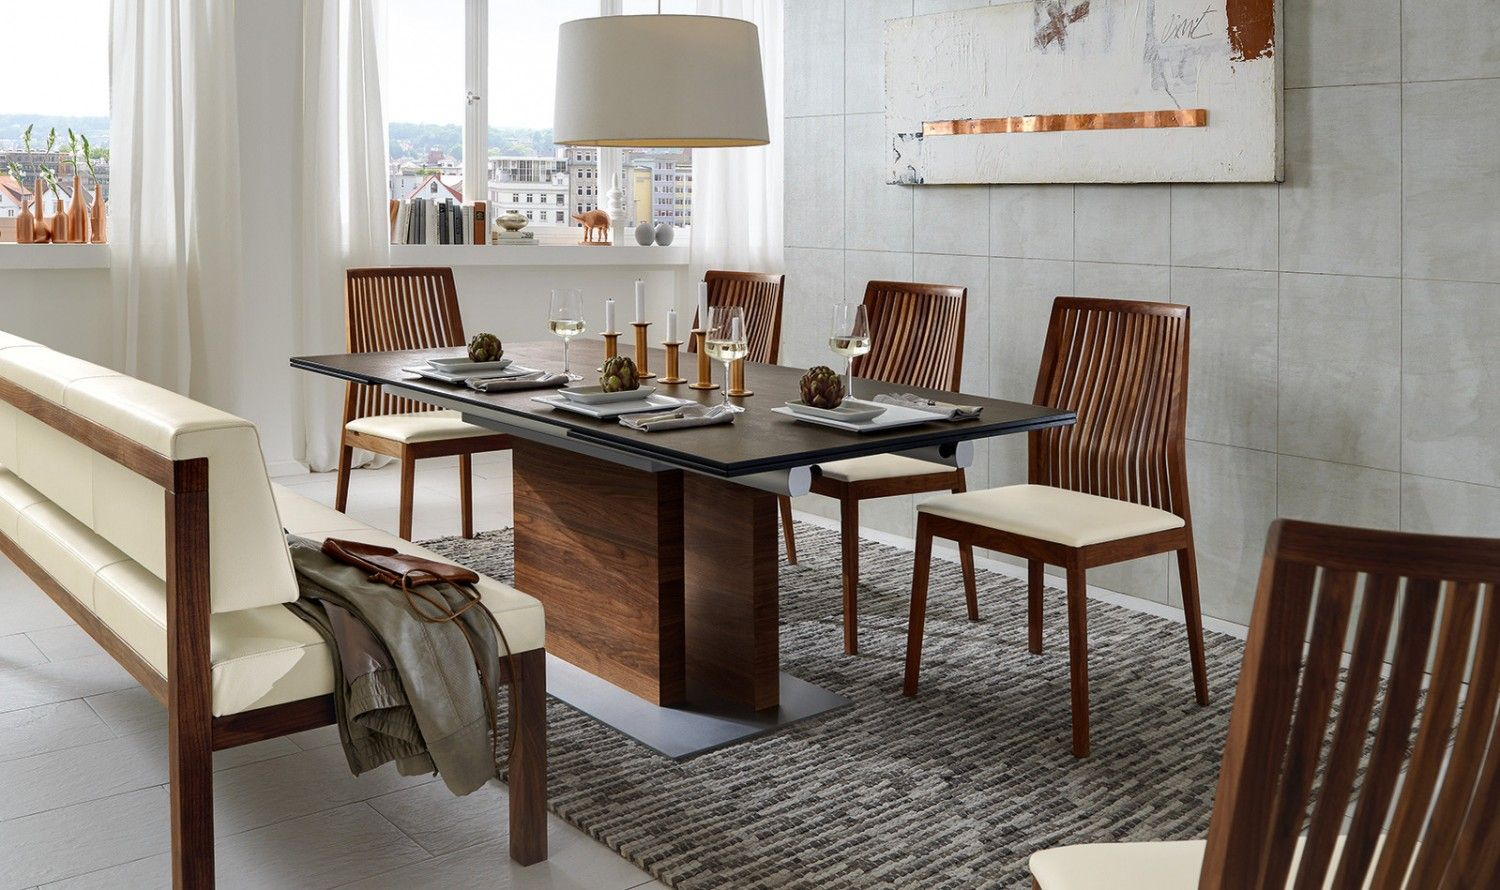 ET229 Dining Table and venjakob chairs